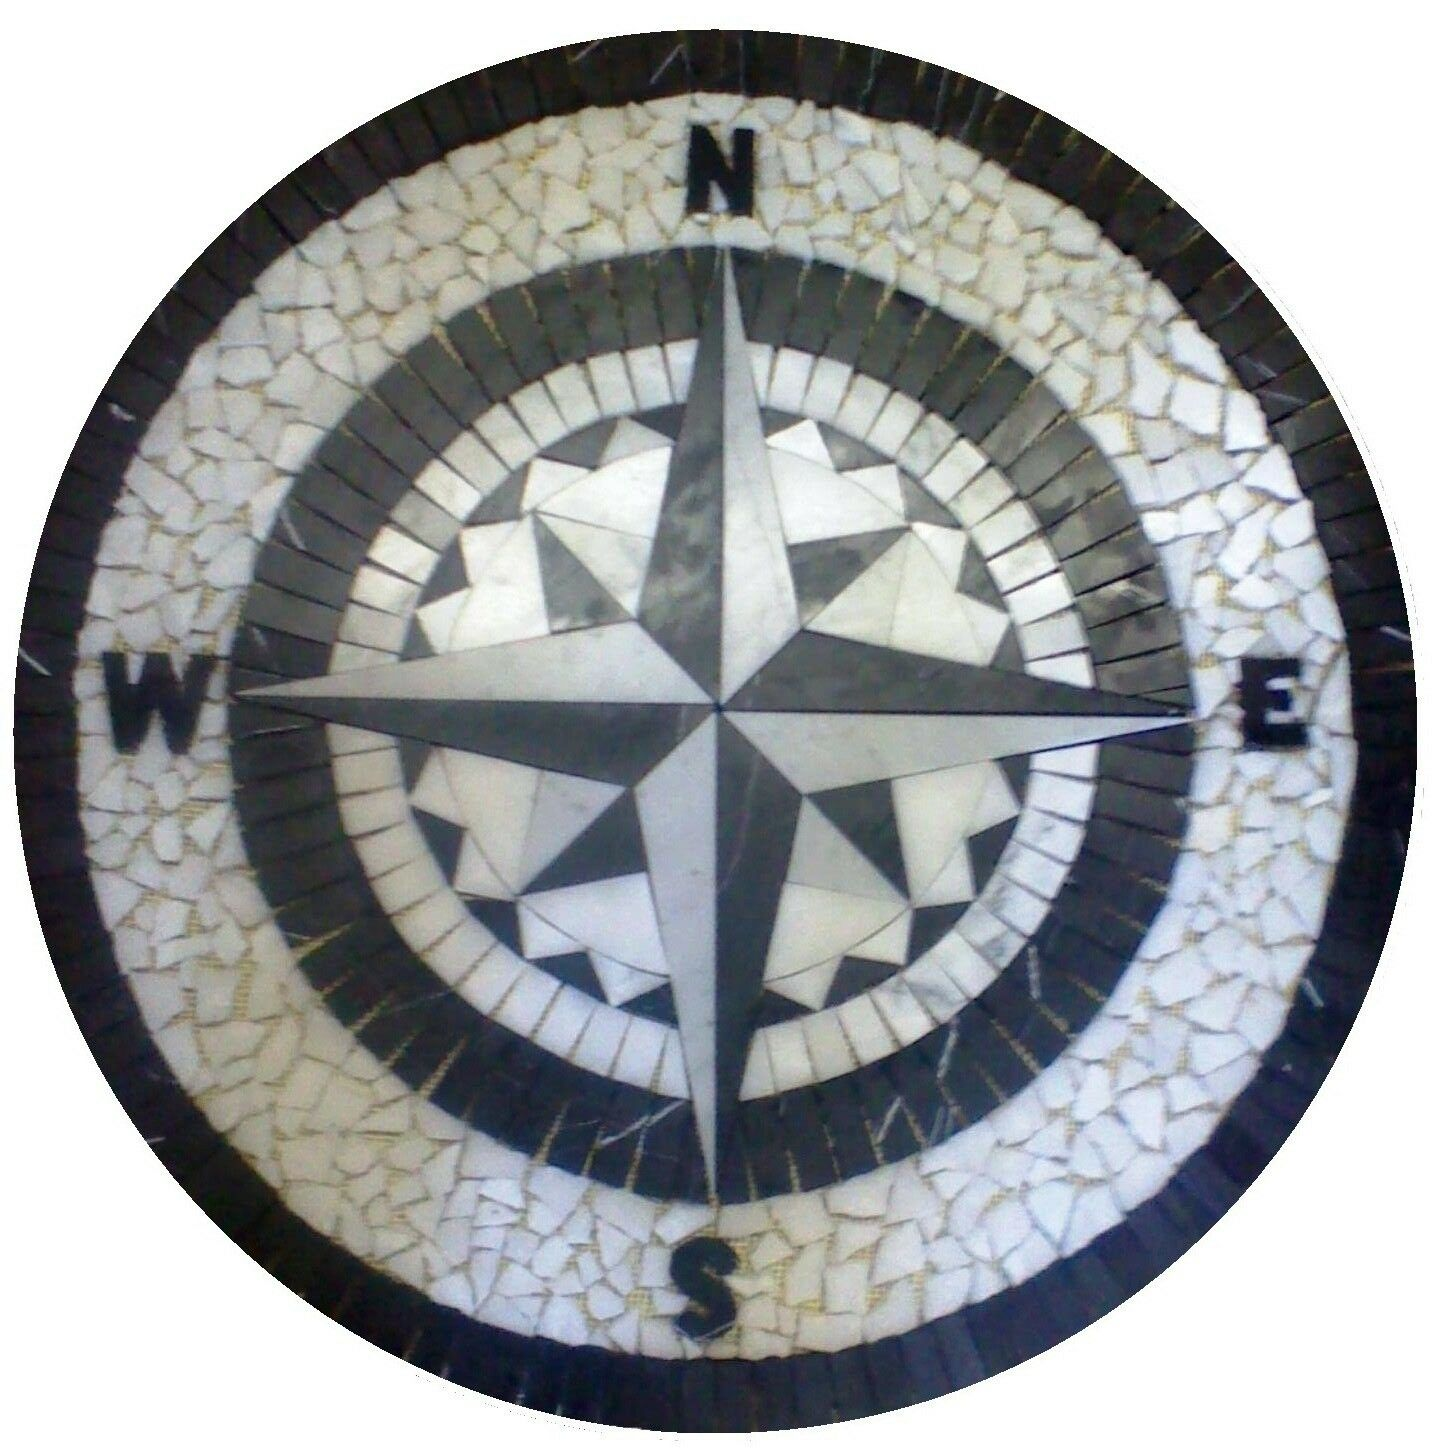 Floor Marble Medallion Black And White Compass Rose Tile Mosaic 32